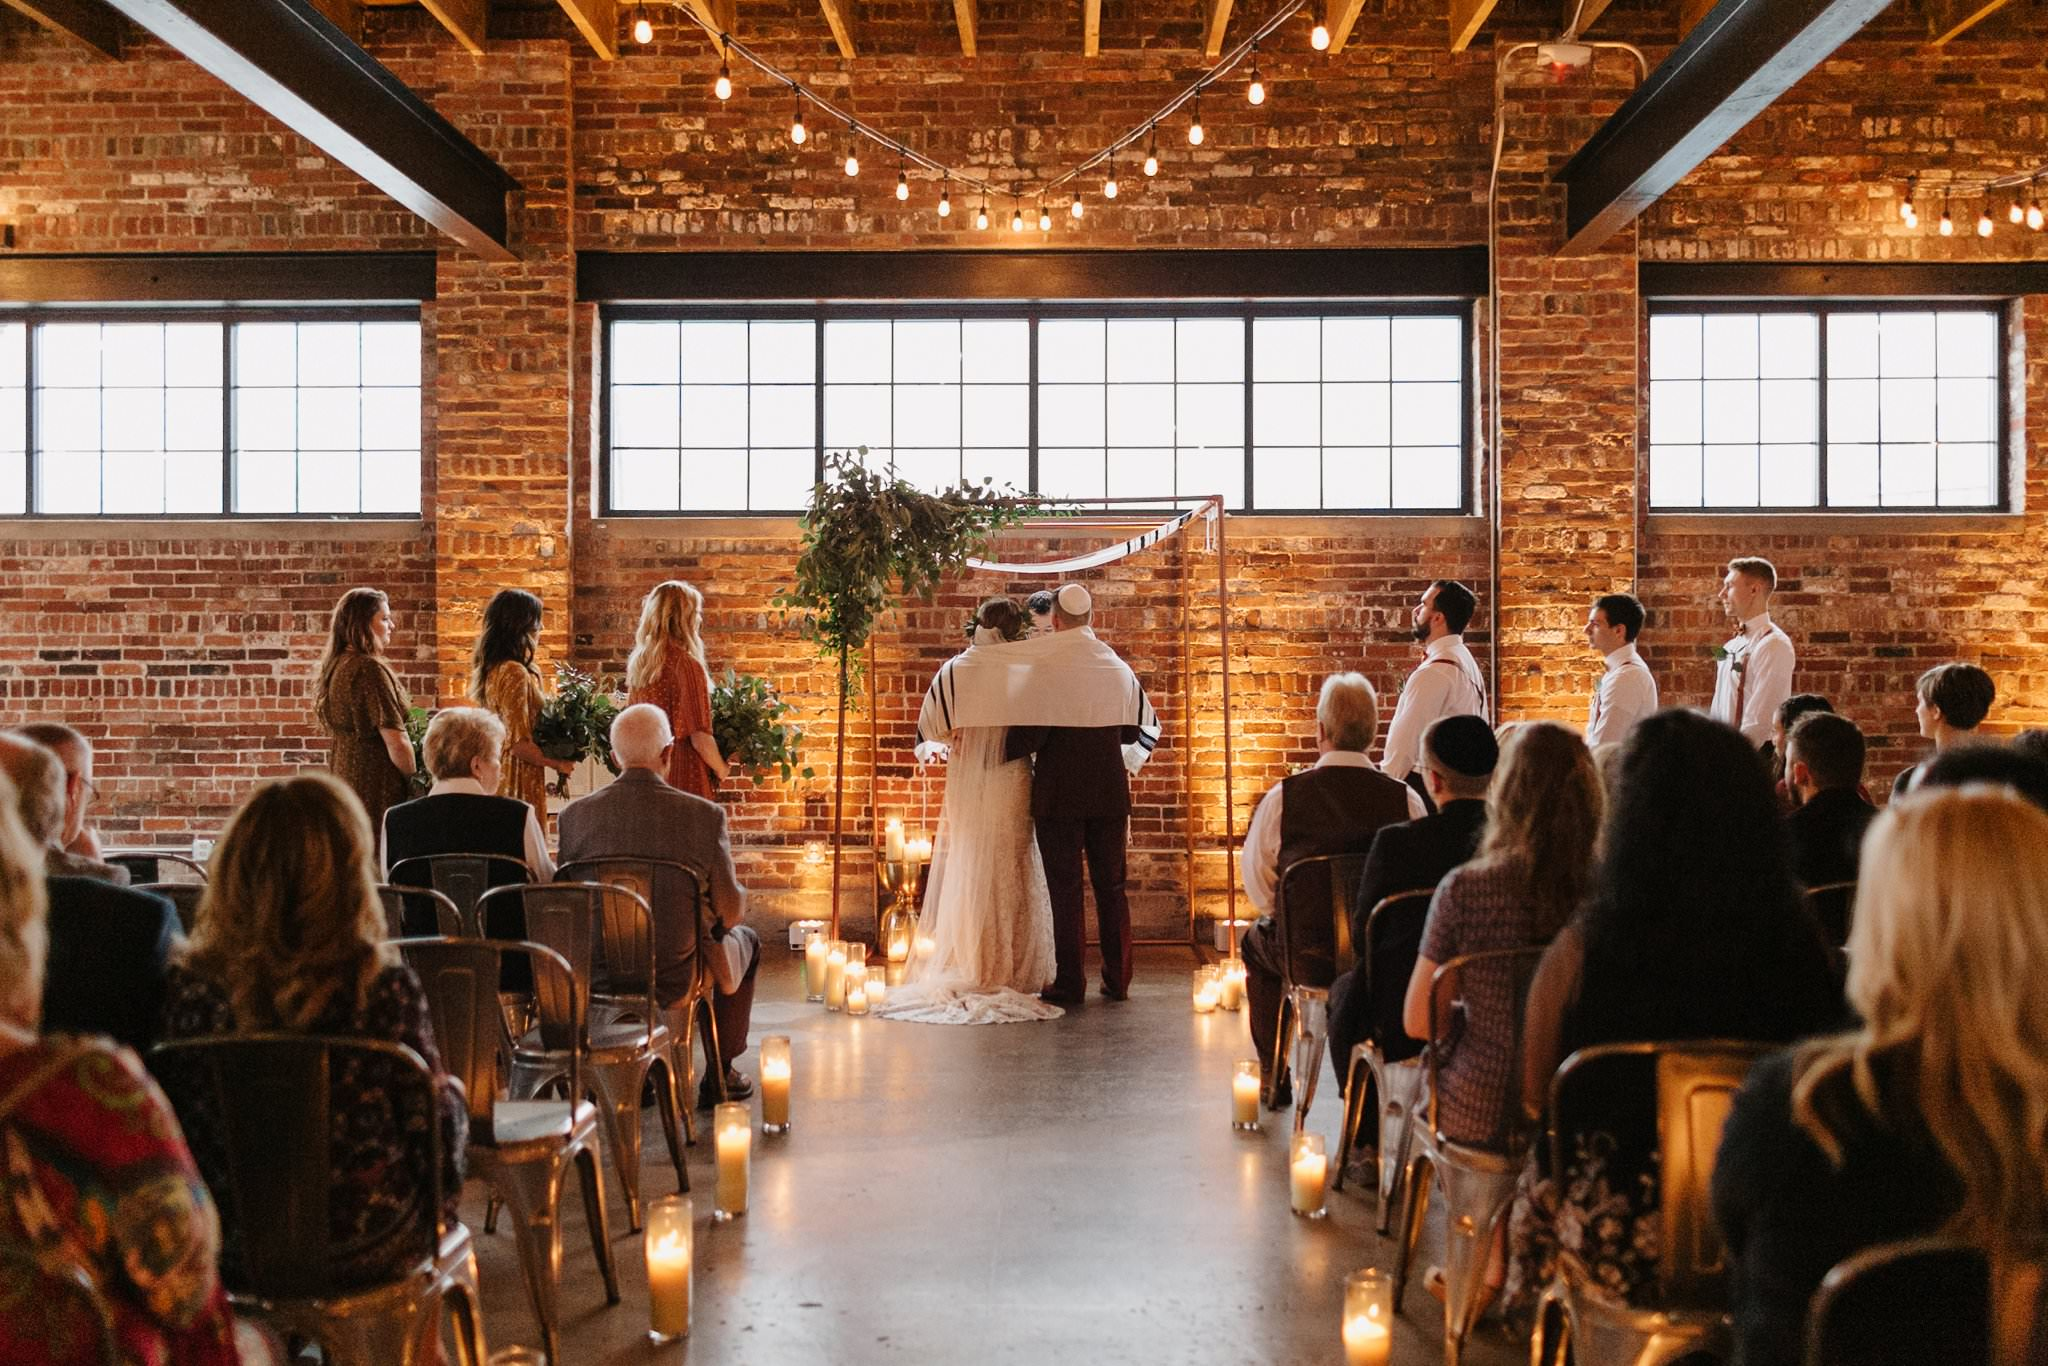 Indianapolis Wedding Venues.The Top Indiana Wedding Venues To Make All Your Wedding